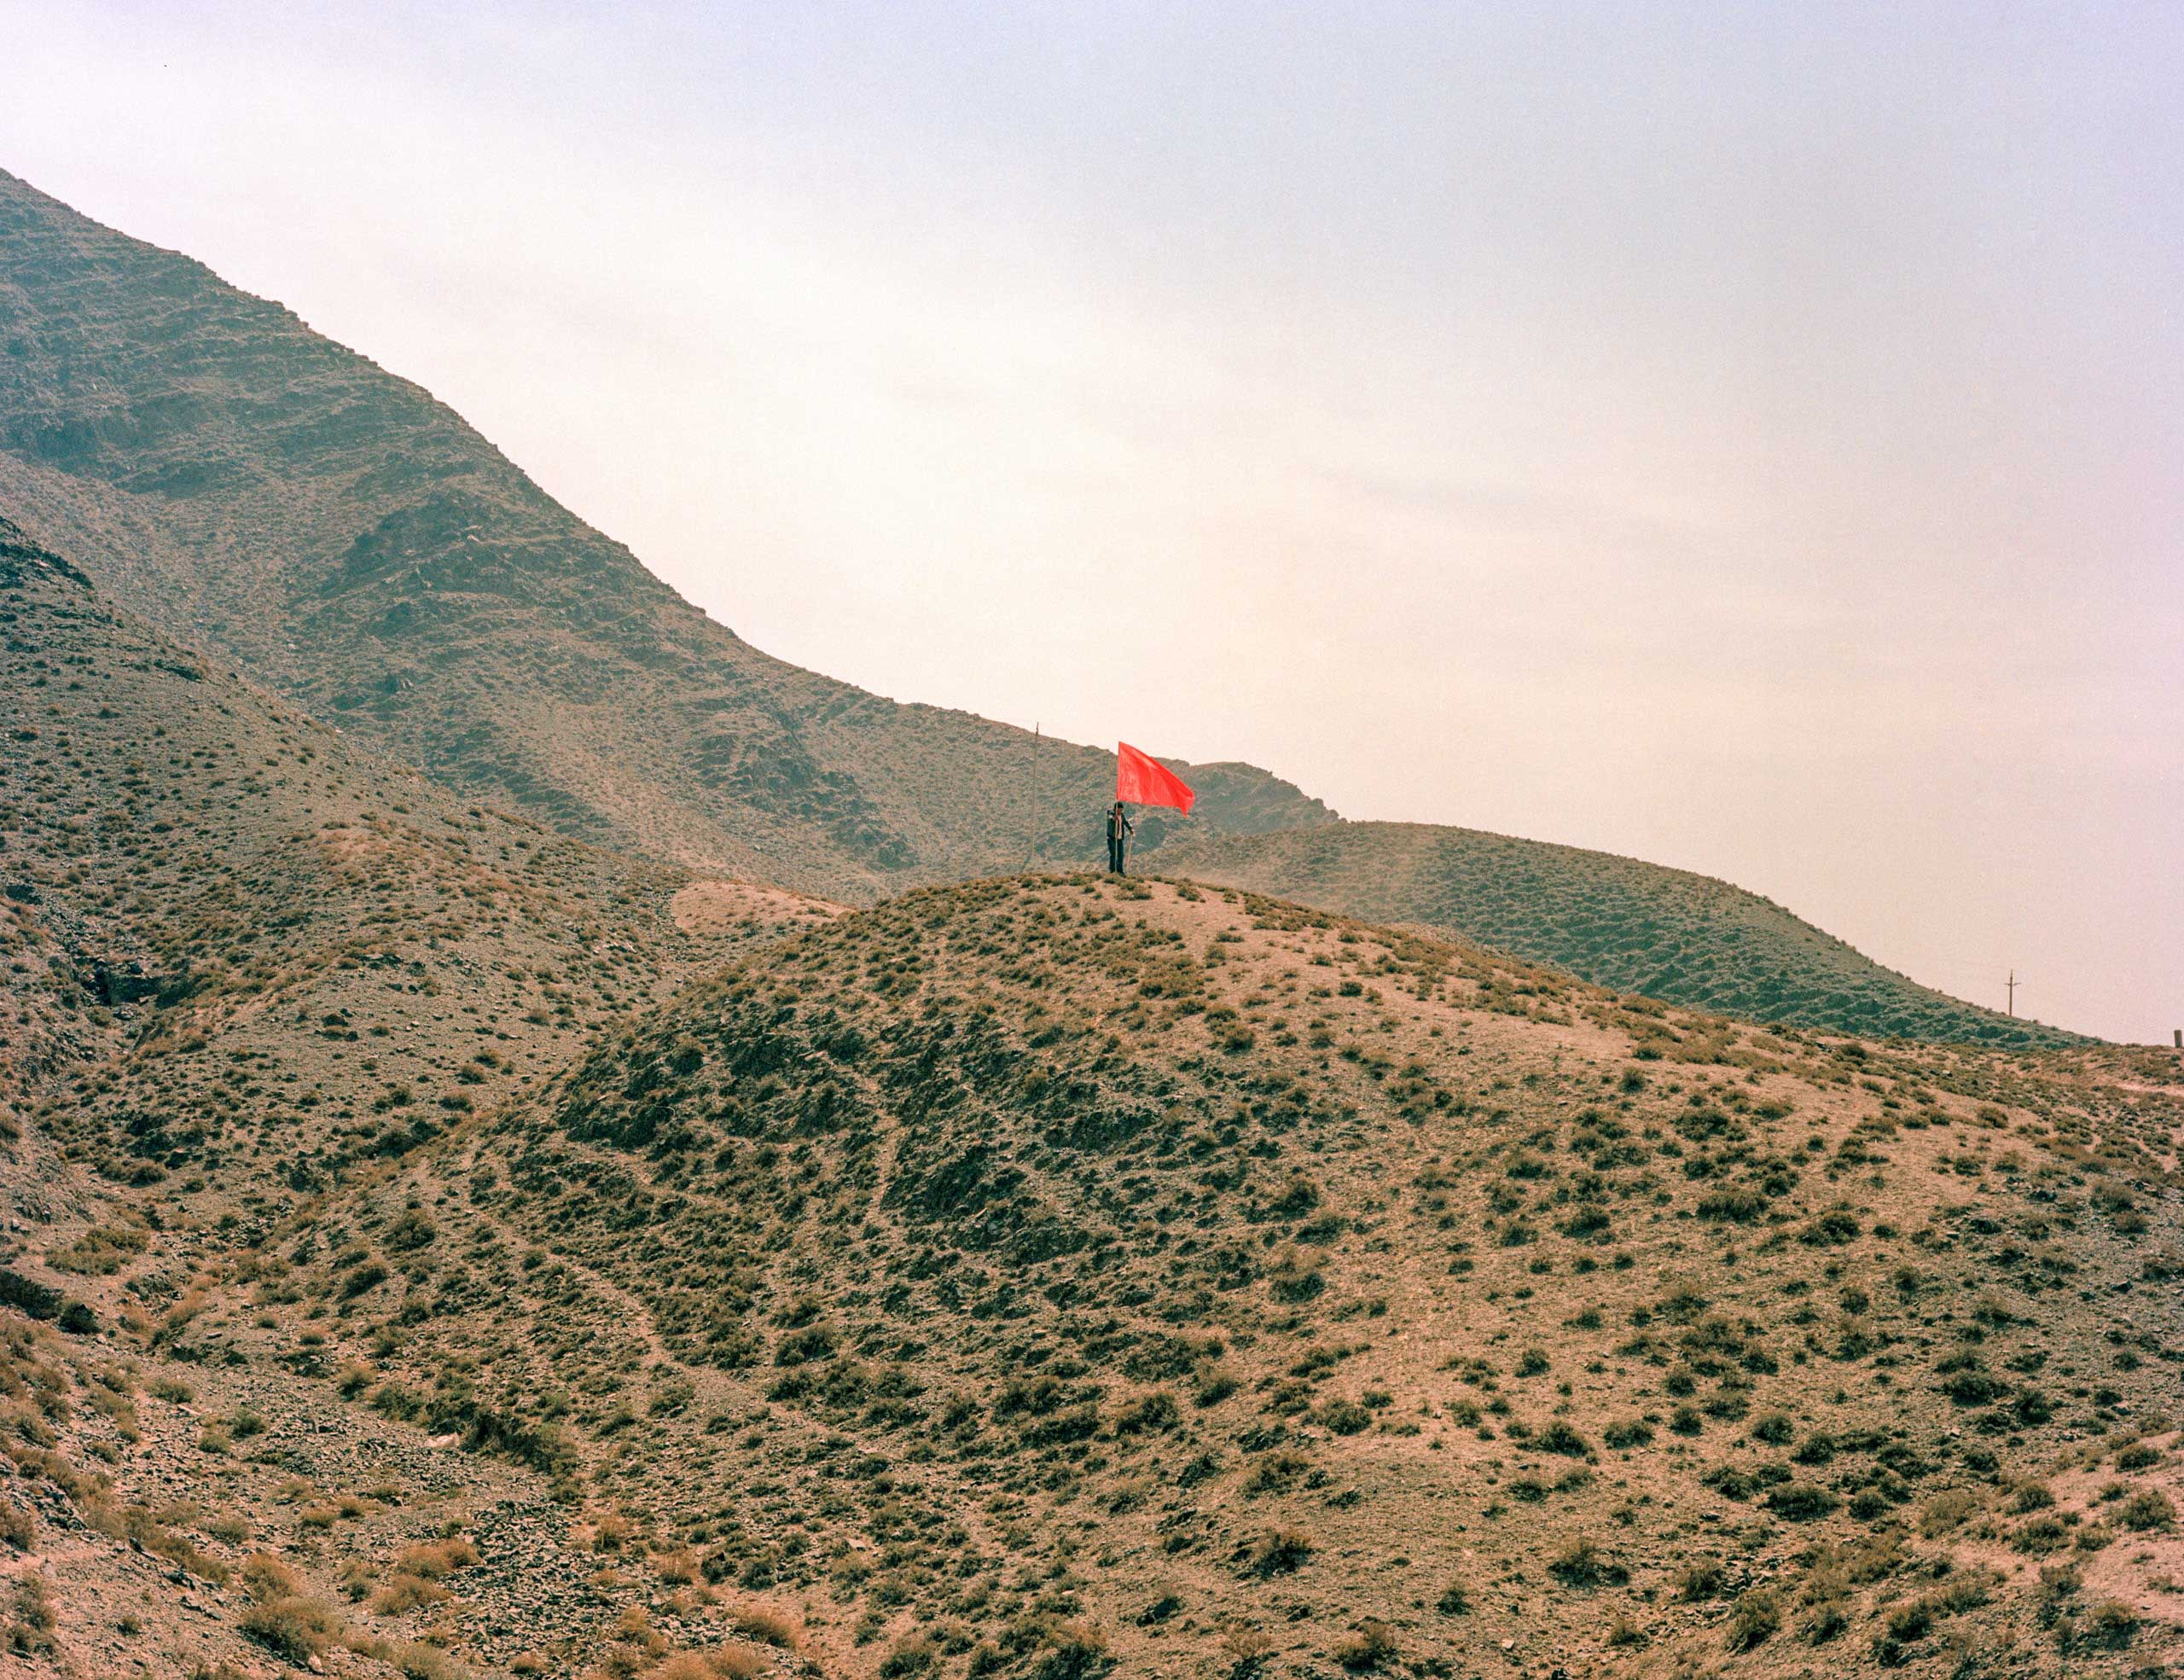 A road builder raises a red flag on a hillside in Jinchuan Valley, Gansu Province, China.